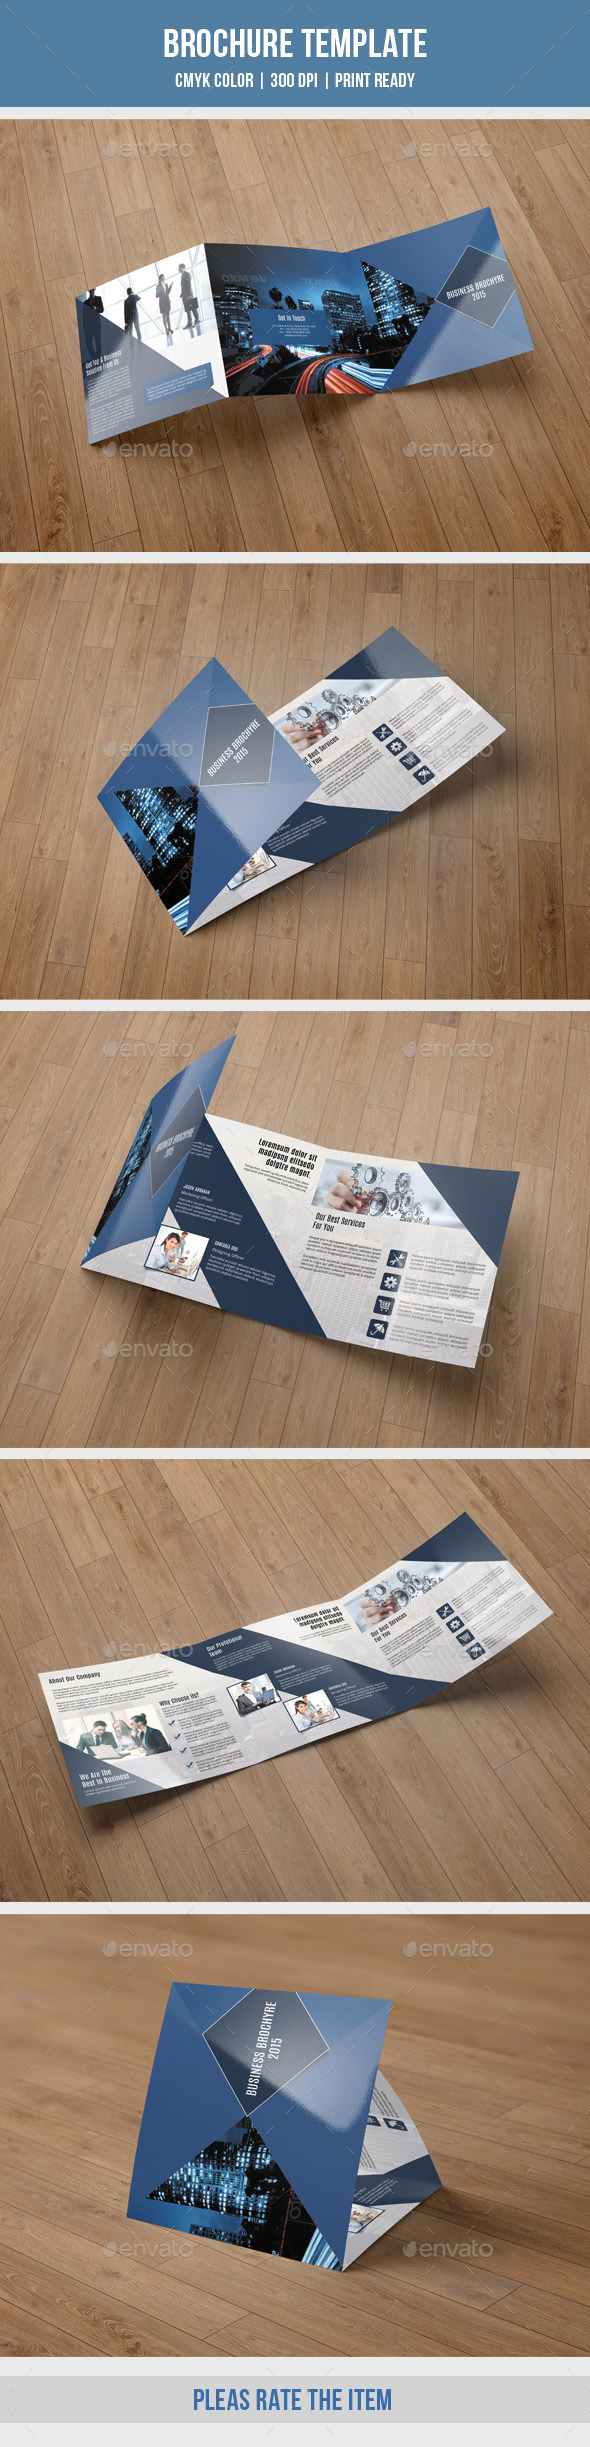 Corporate Square Trifold Brochure-V59 - Corporate Brochures